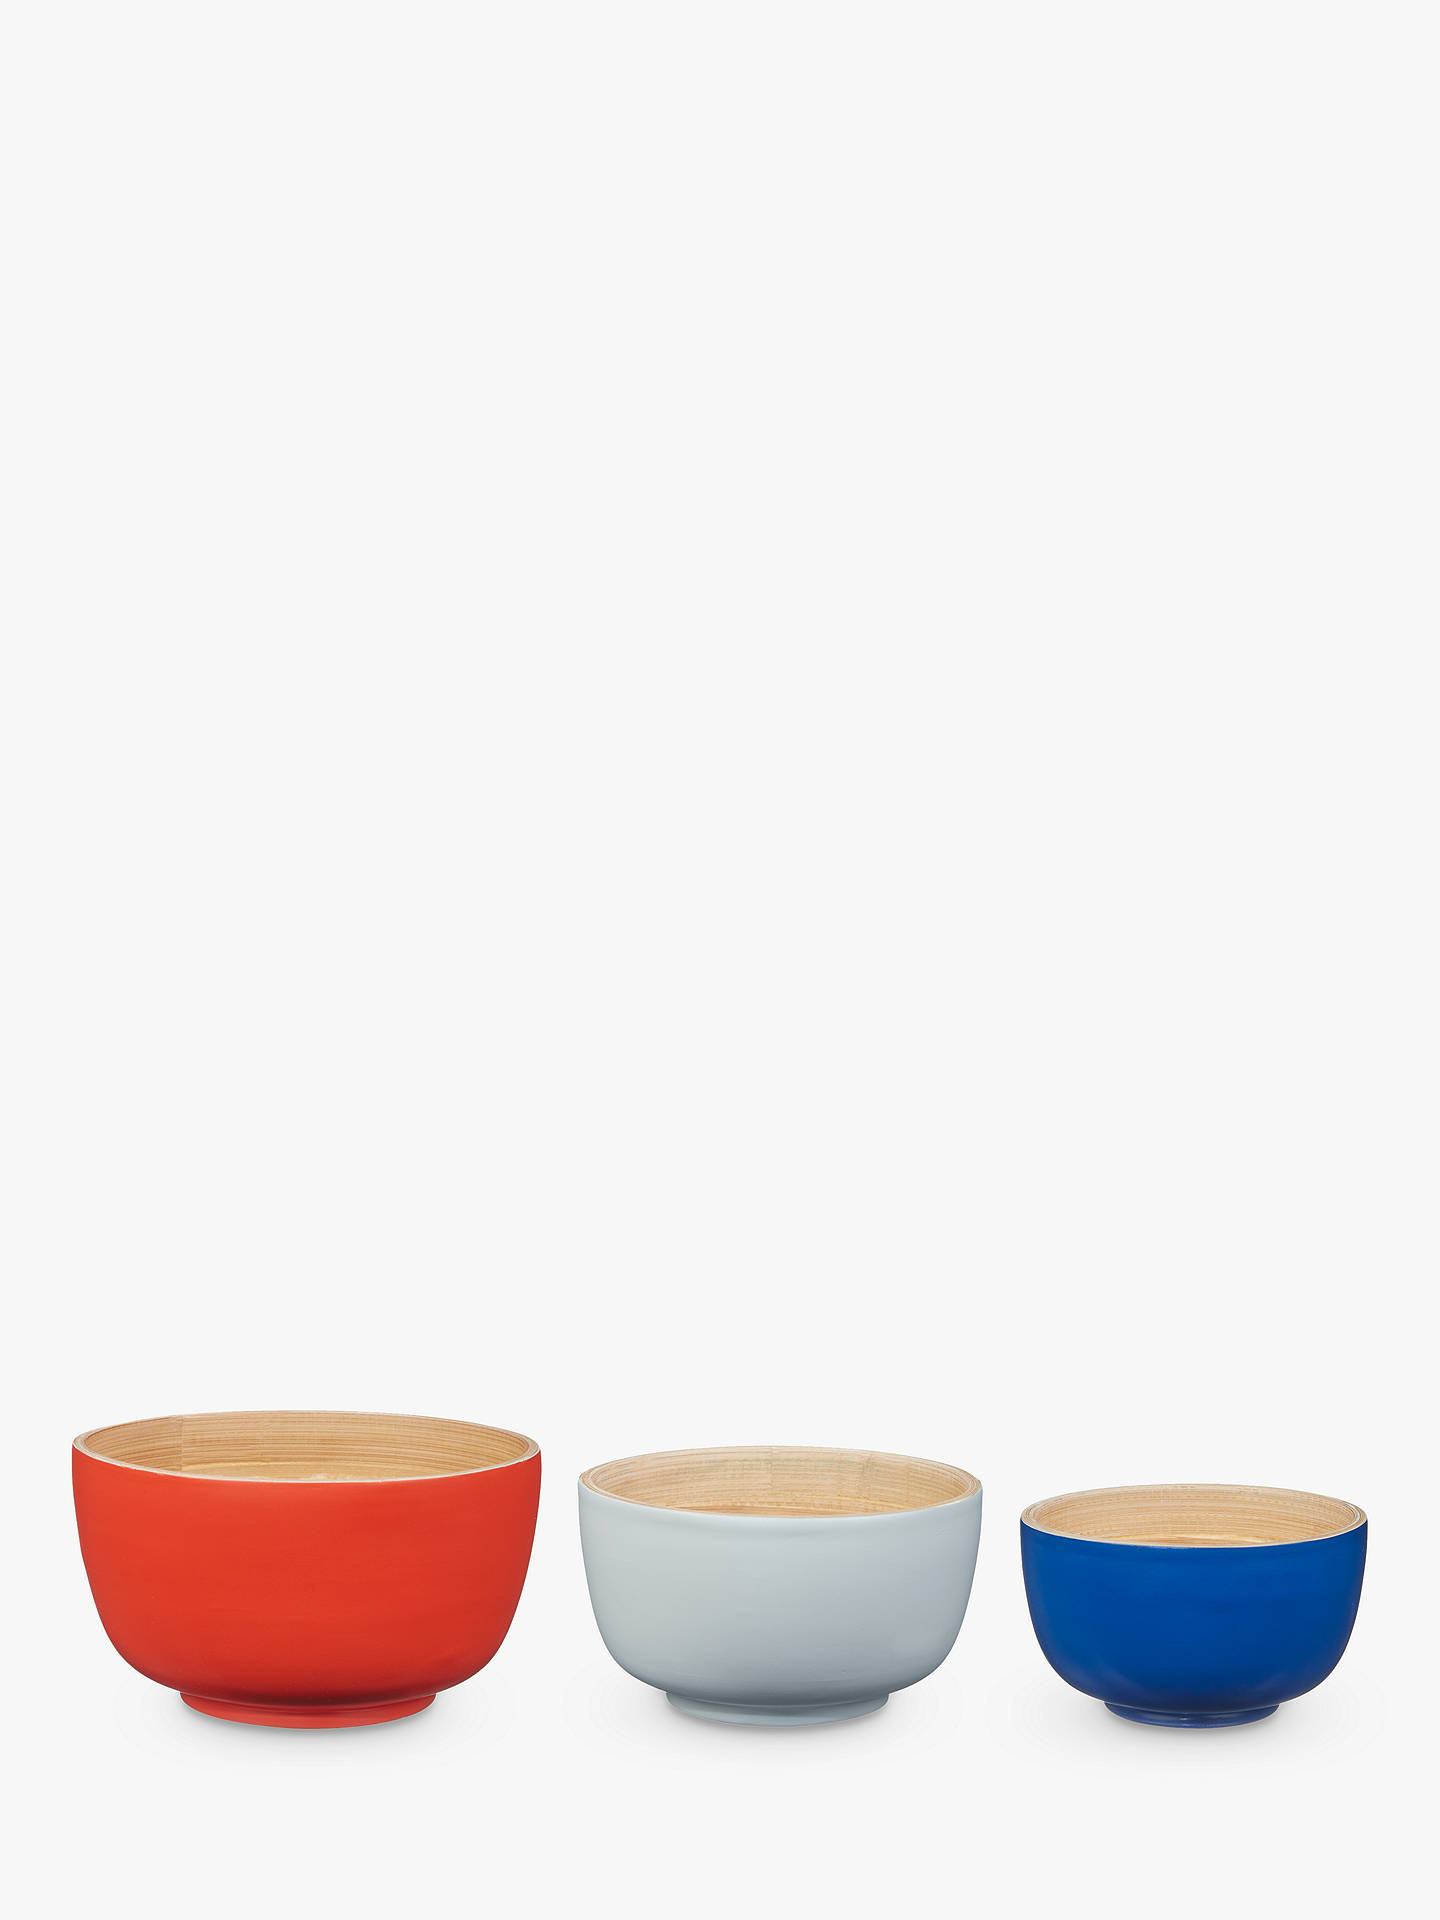 BuyHouse by John Lewis Nesting Bamboo Bowls, Assorted, Set of 3 Online at johnlewis.com